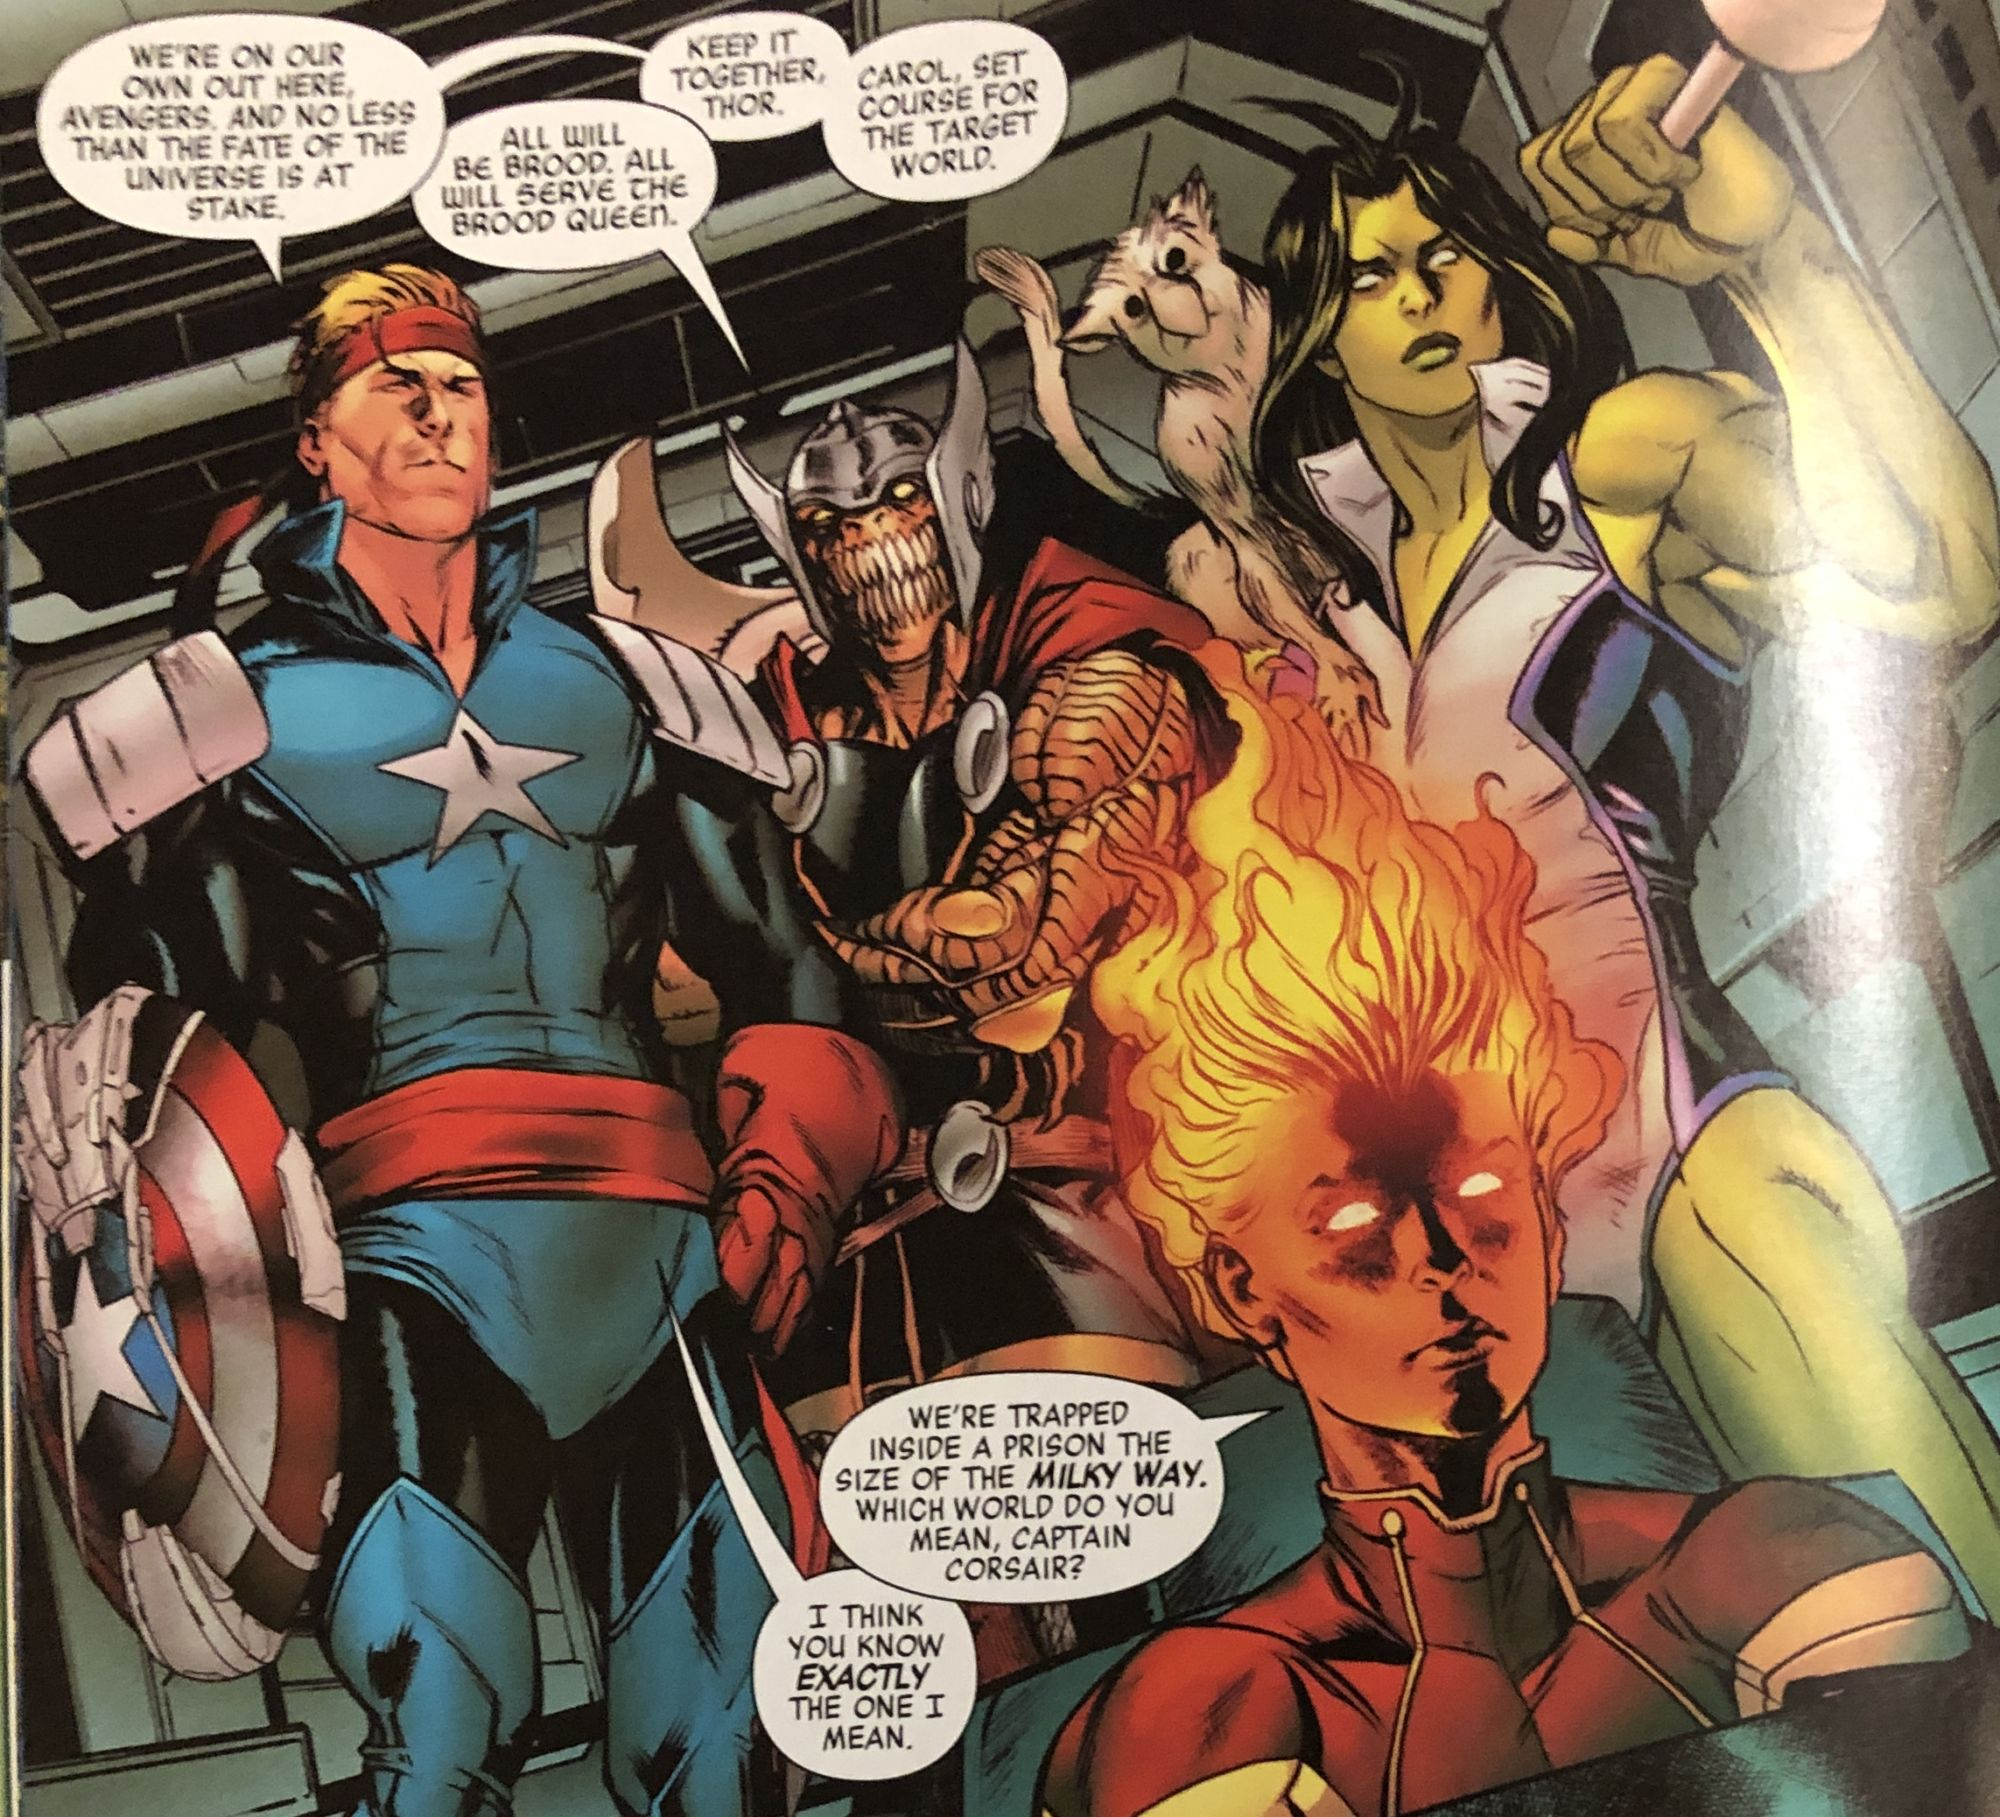 Captain America Goes Captain Kirk in Today's Avengers #27 – And is Thor Still Worthy? (Spoilers)